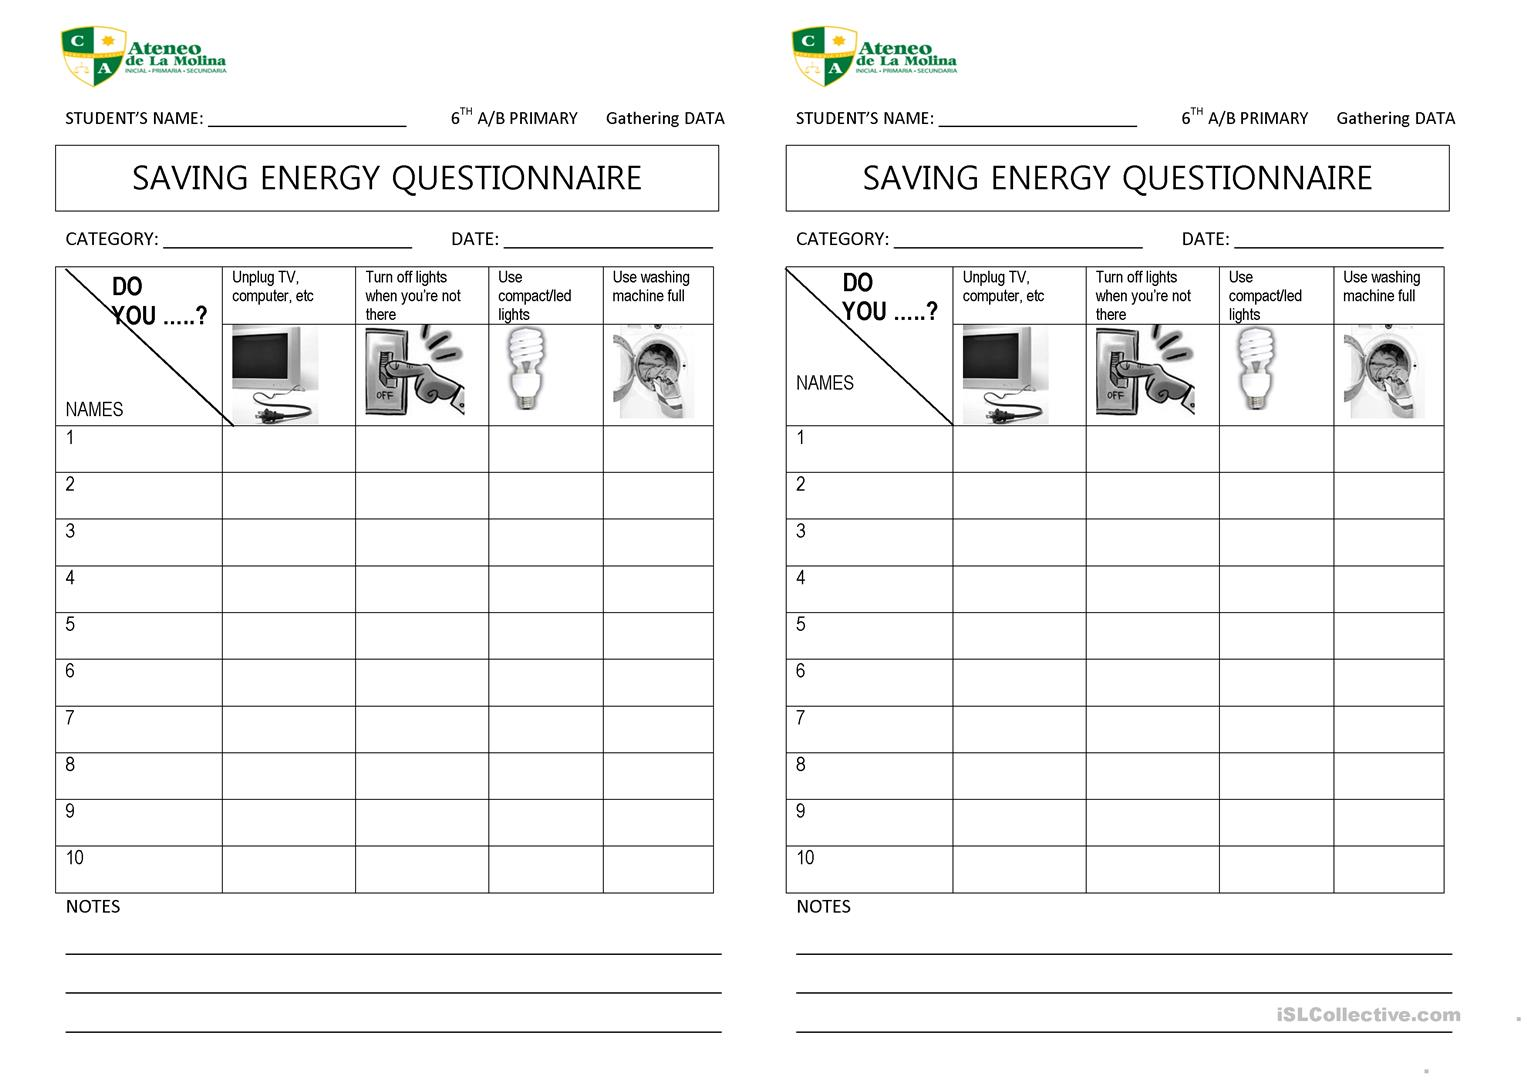 Save Energy Questionnaire